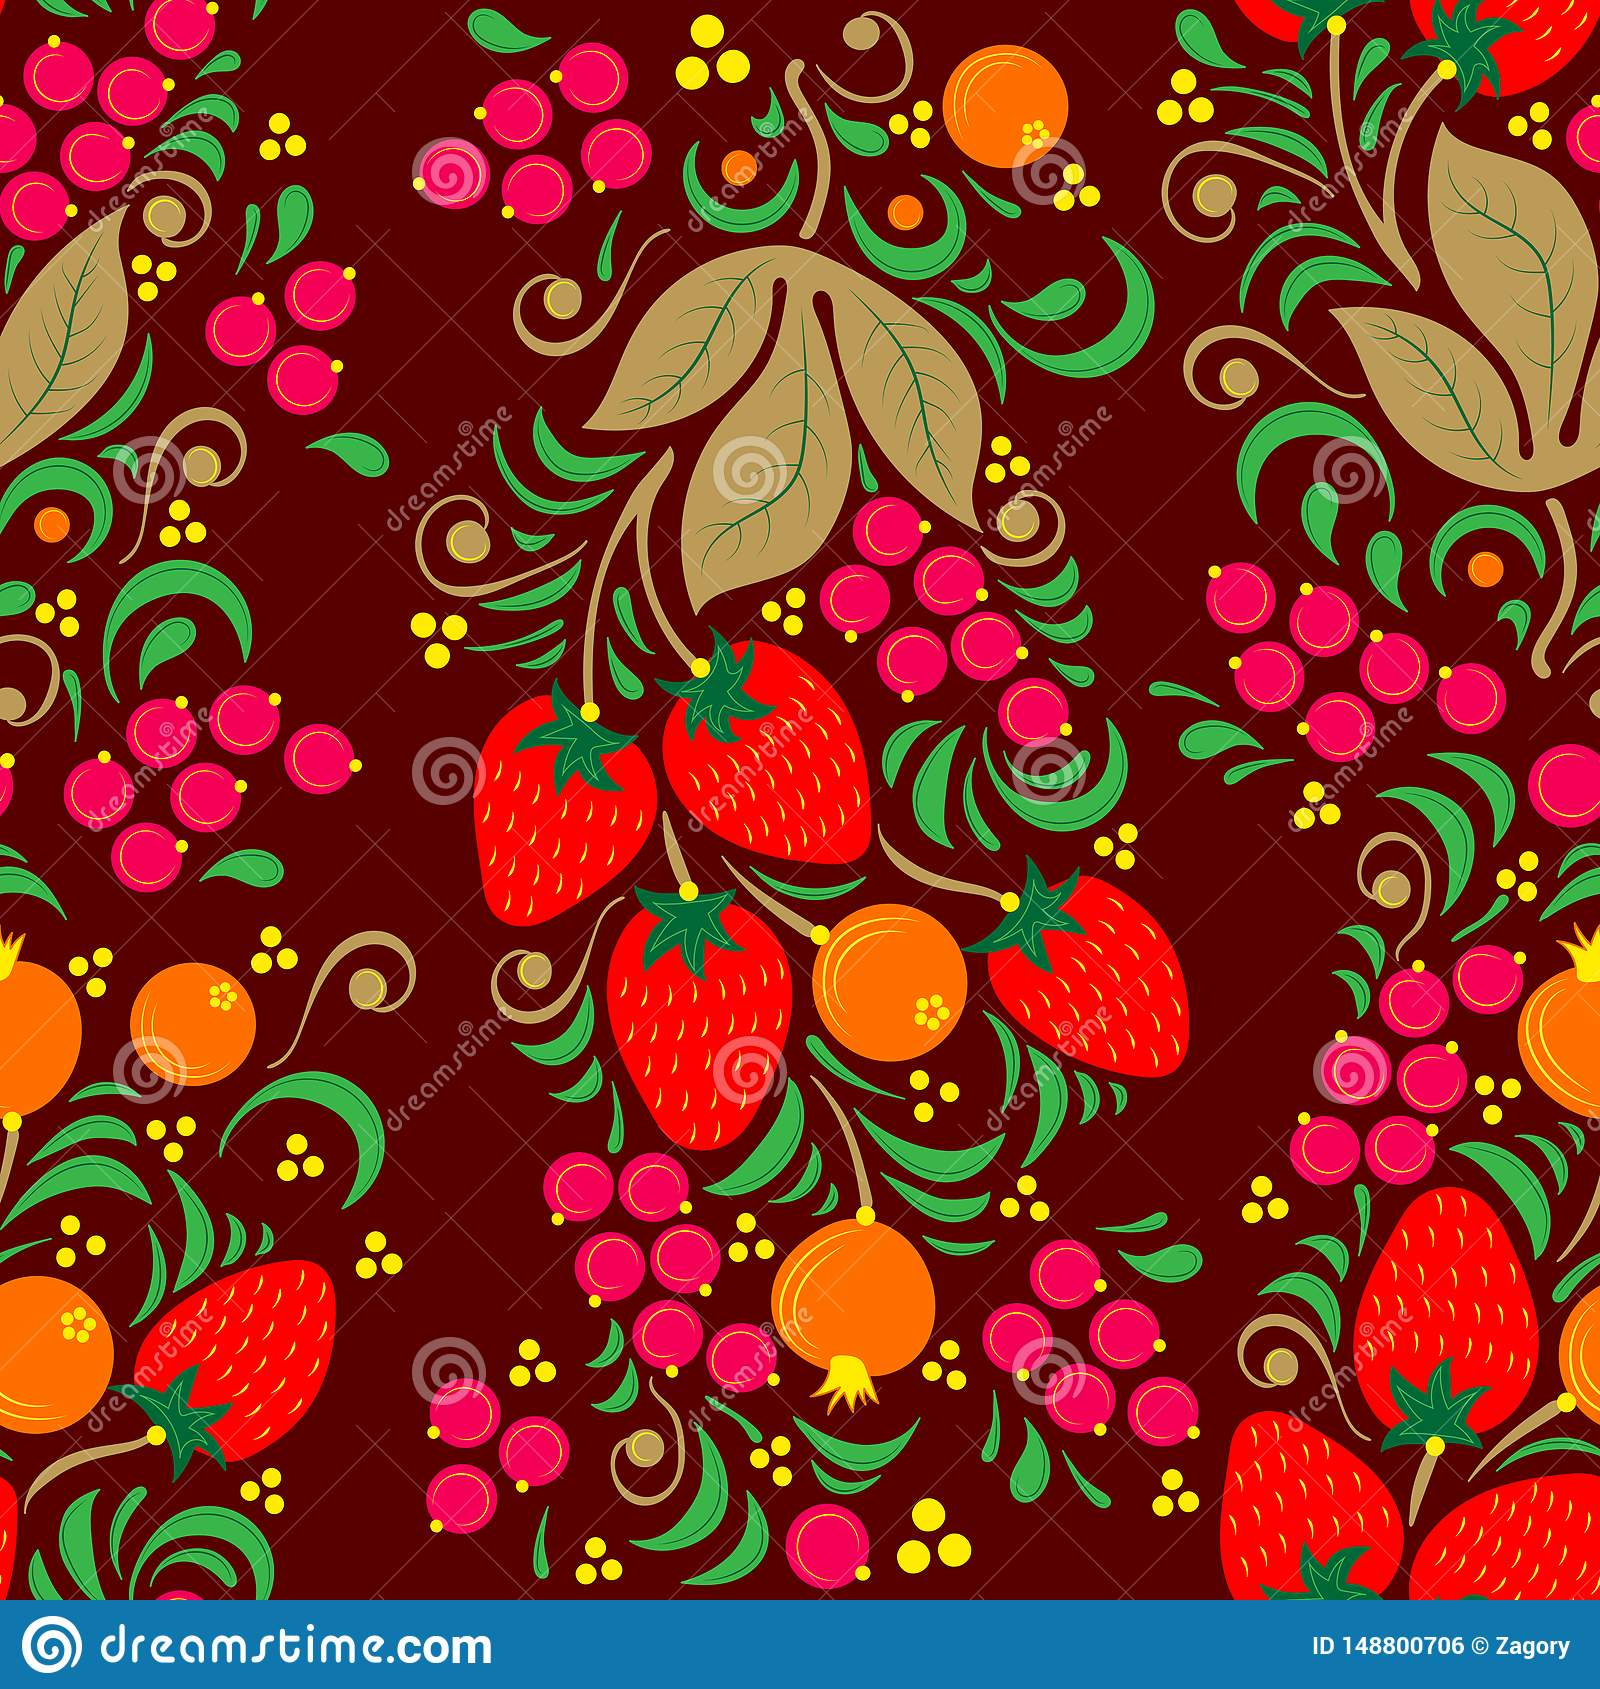 Seamless illustration with  floral pattern in folk painting style, flowers, leaves and berries on dark Burgundy background